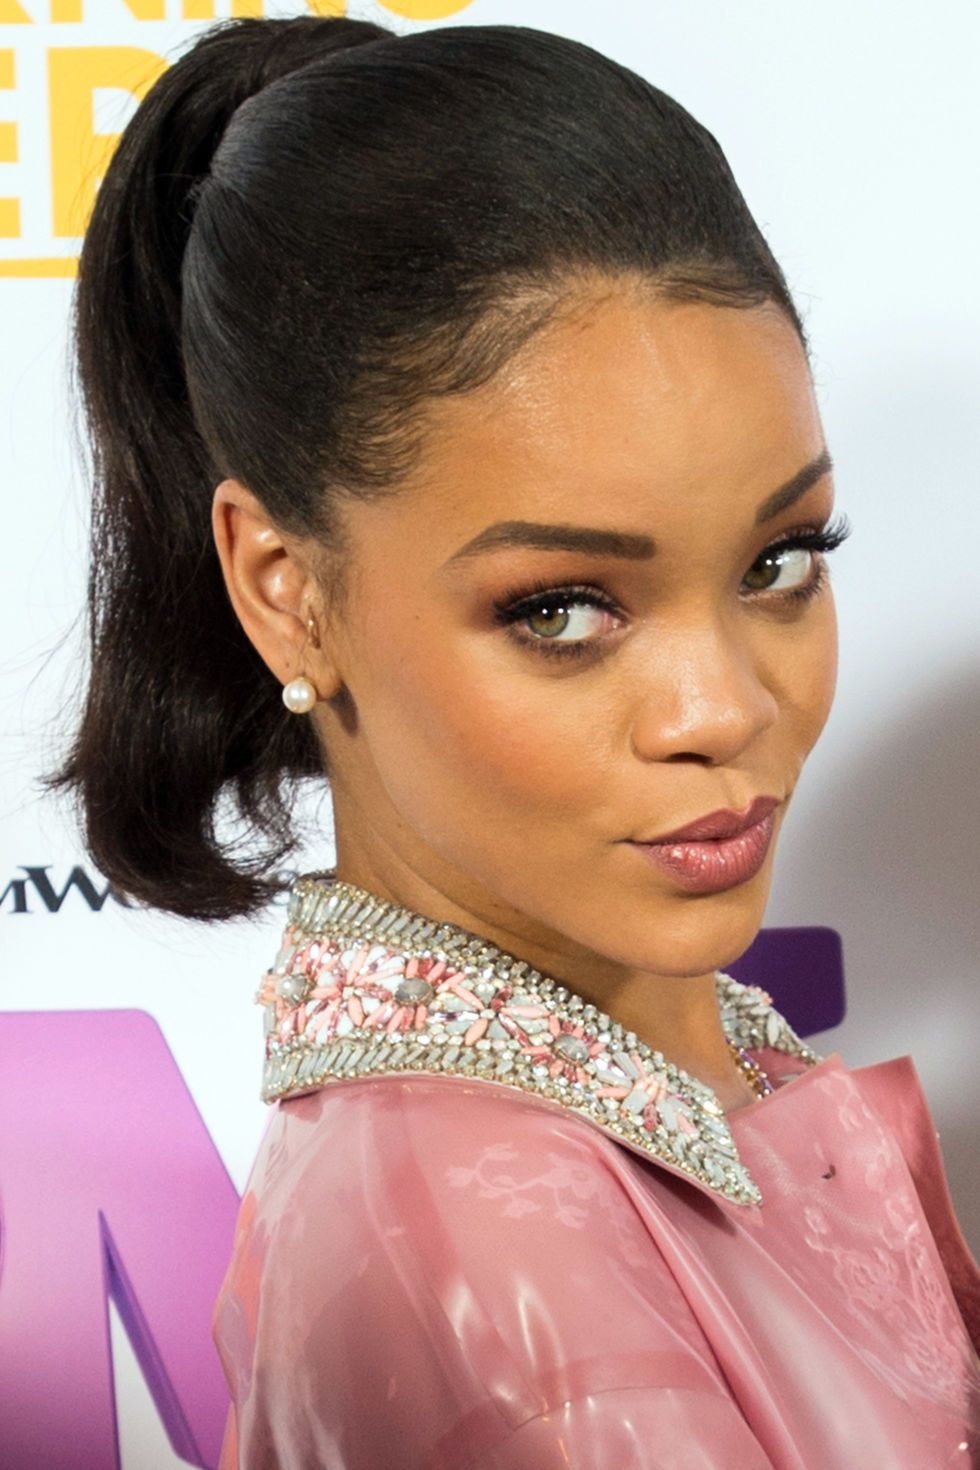 Rihanna puckers for the camera in a retro take on the Fresh Face style. Get the look at: http://bit.ly/BookGLAM